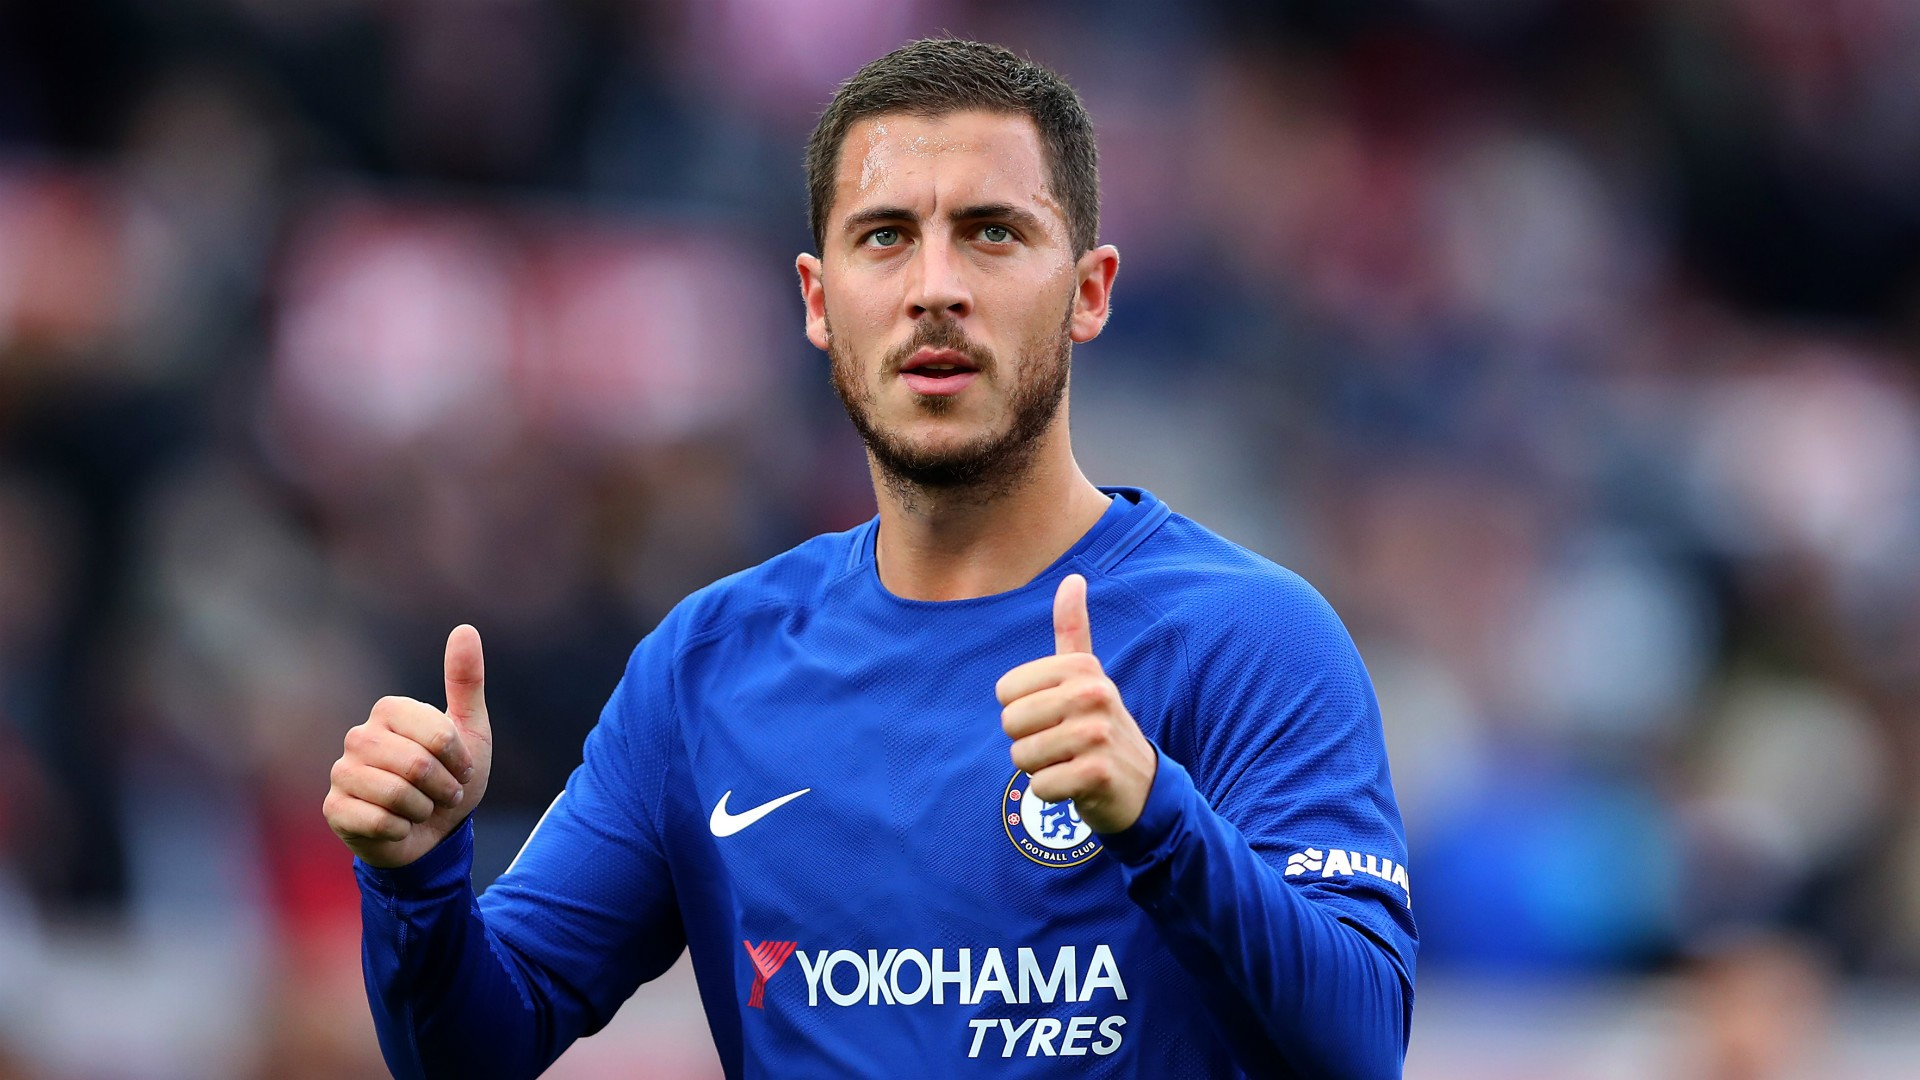 https://images.performgroup.com/di/library/GOAL/5d/11/eden-hazard-chelsea_1vzakht9nda6y1rgmioxy0r5tv.jpg?t=-354234234&quality=90&w=0&h=1260